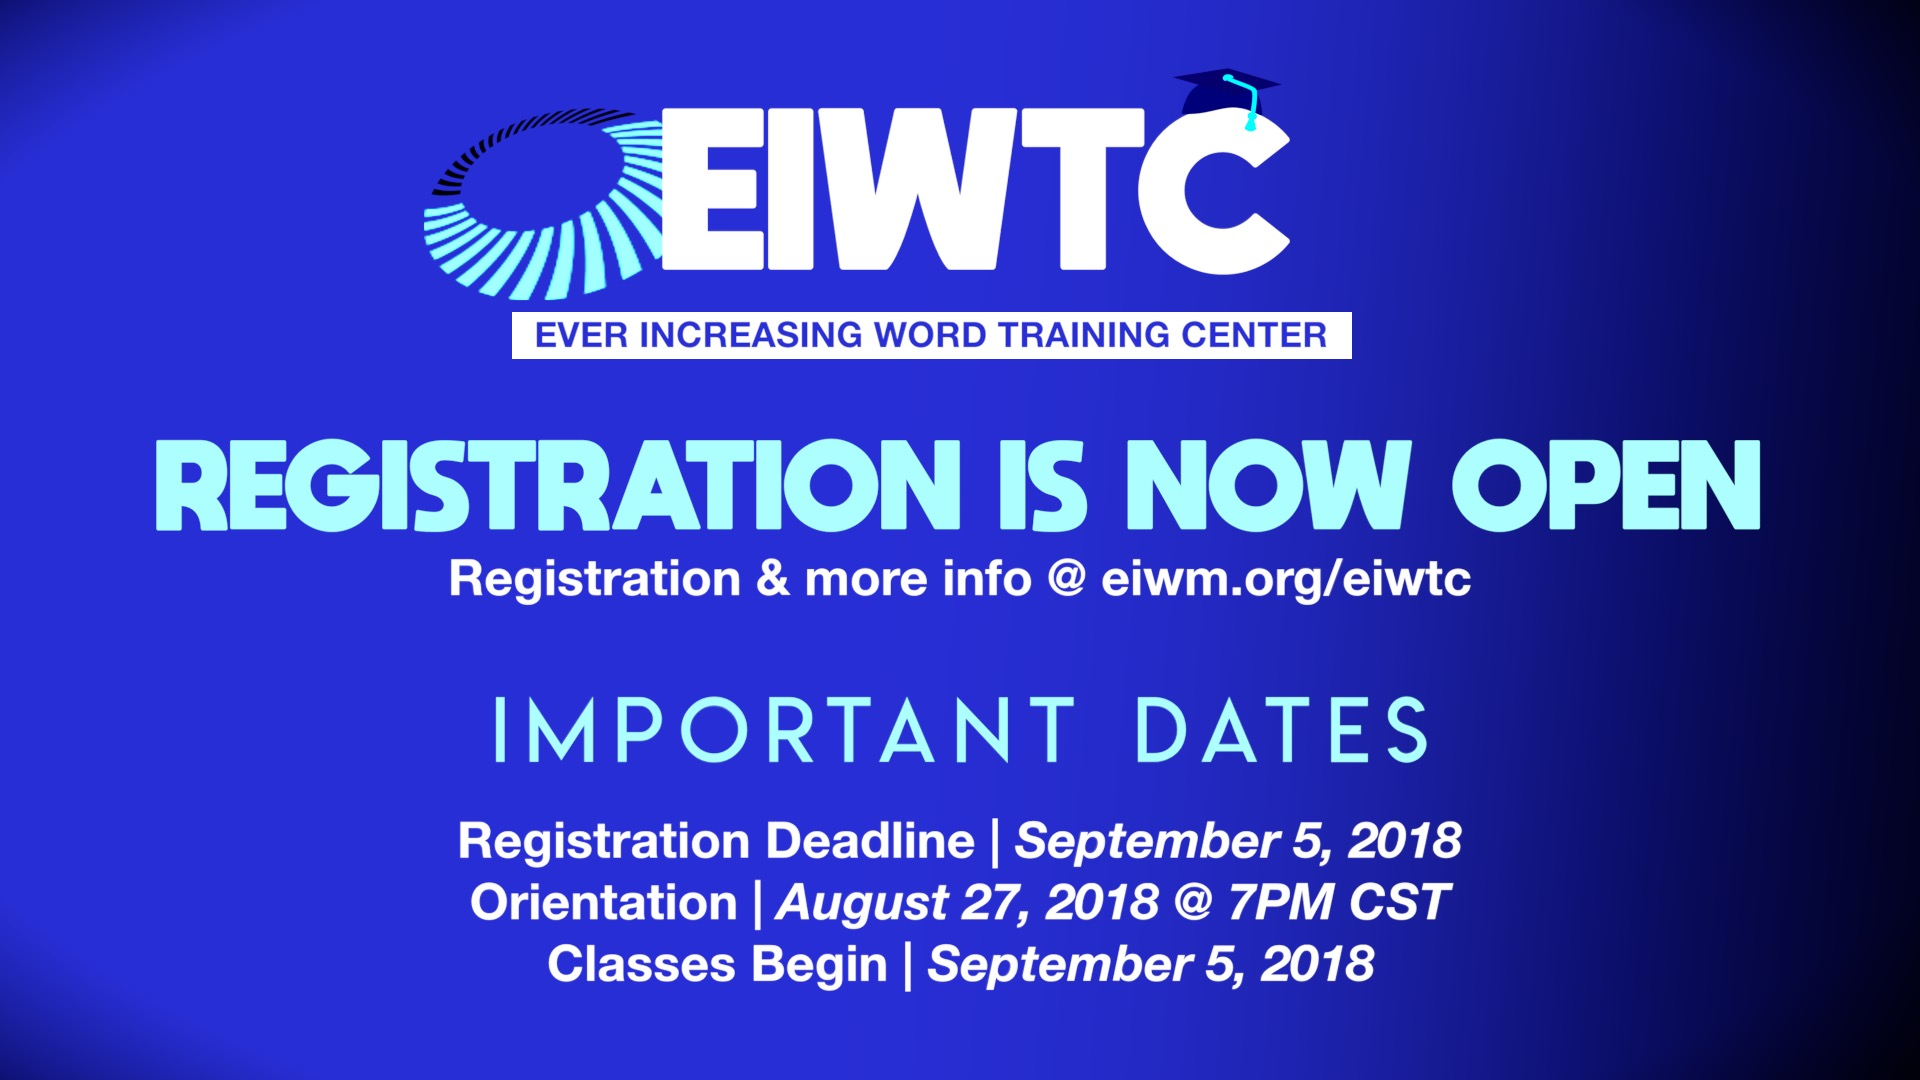 Eiwtc registration 2018 2019 cover